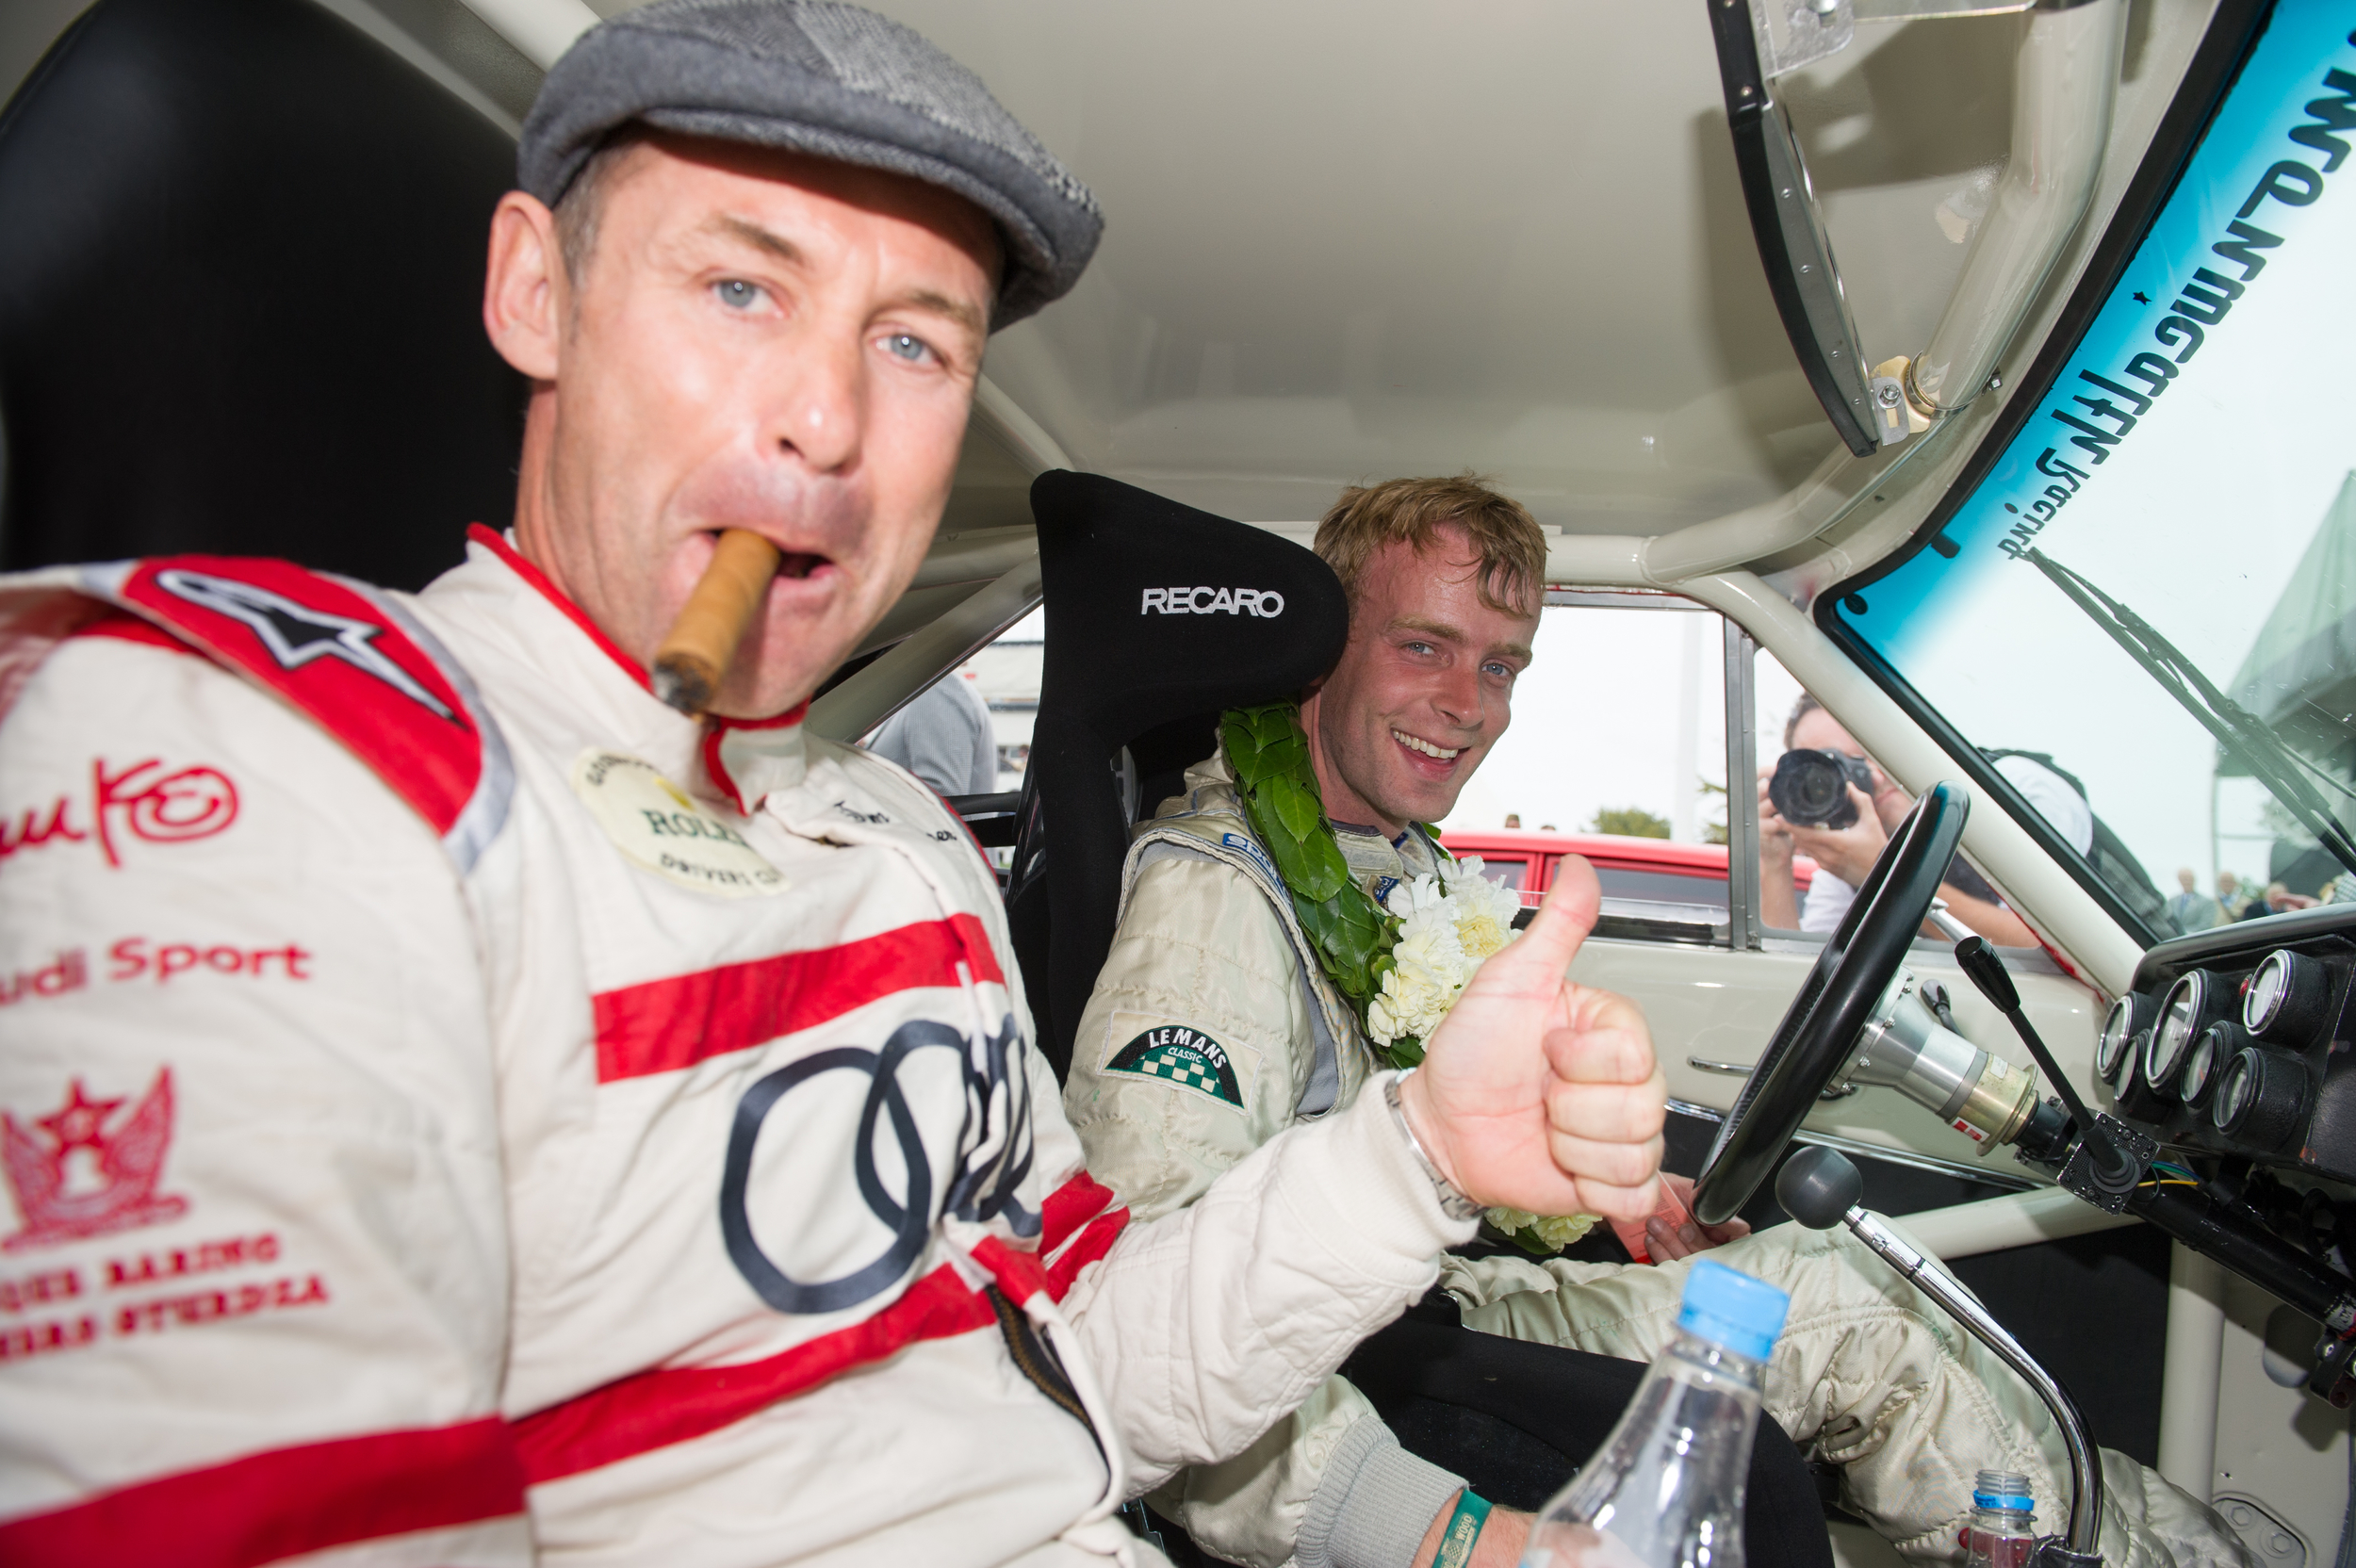 HENRY MANN & TOM KRISTENSEN AFTER RACE NO 2  ©   C opyright Scott Dennis Photography